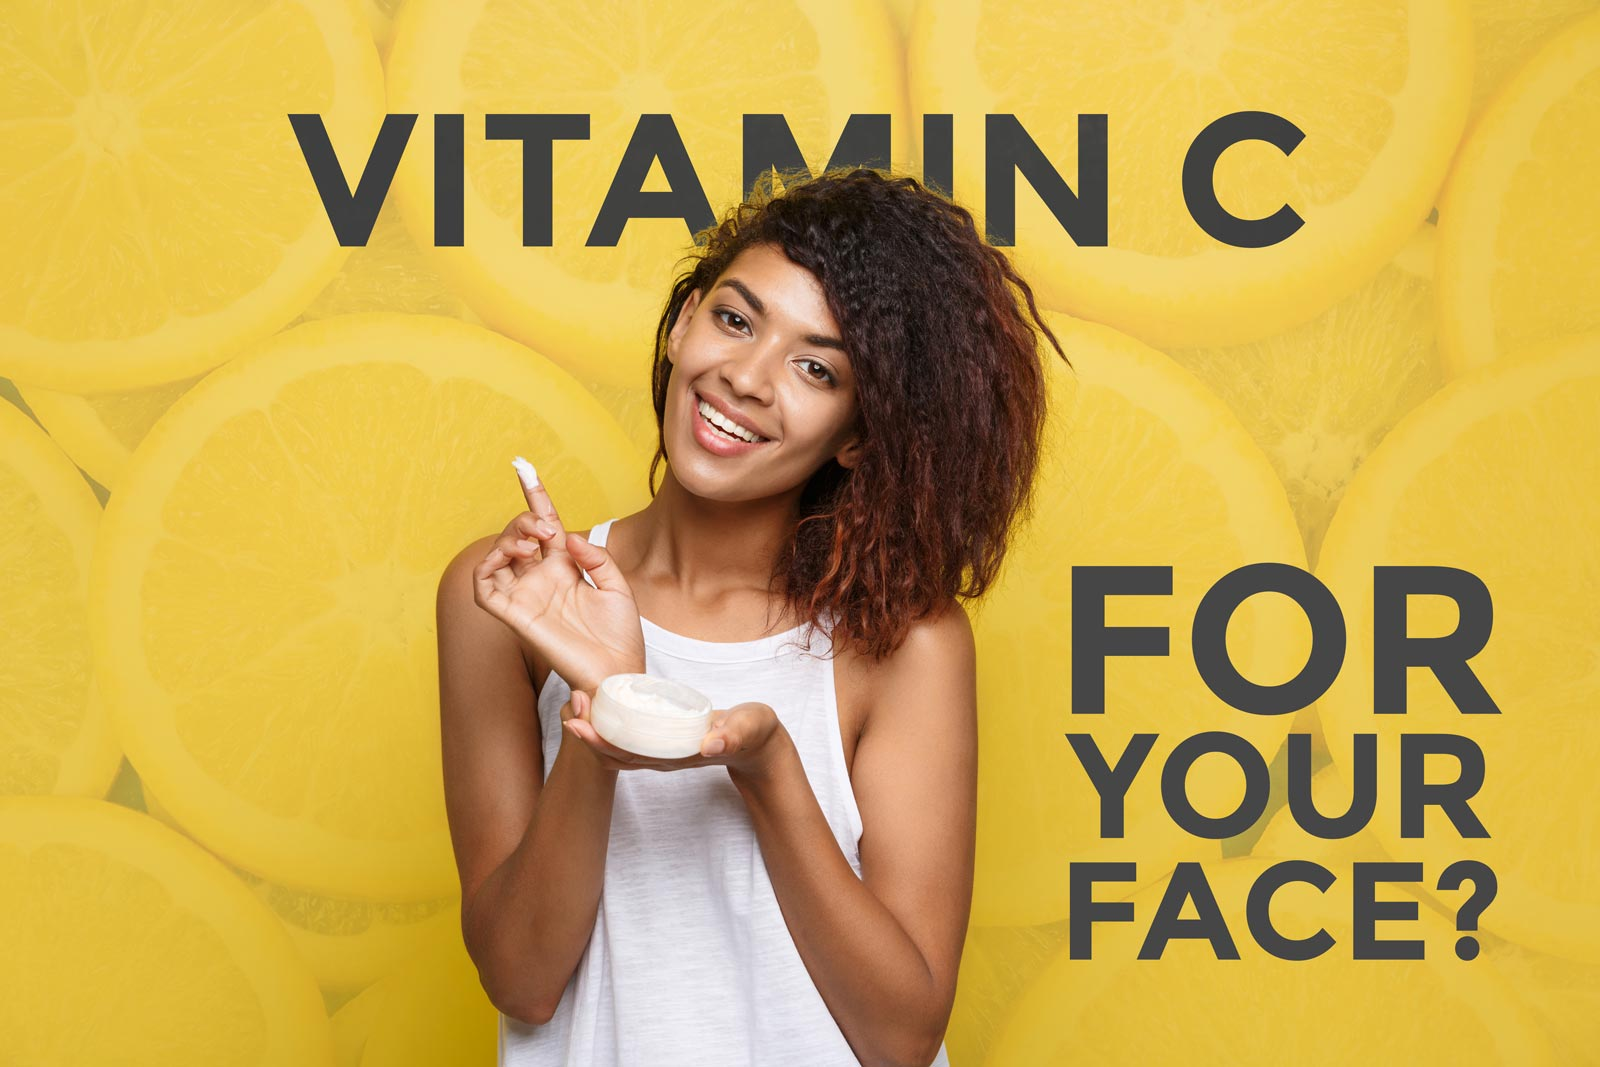 Vitamin C for your face